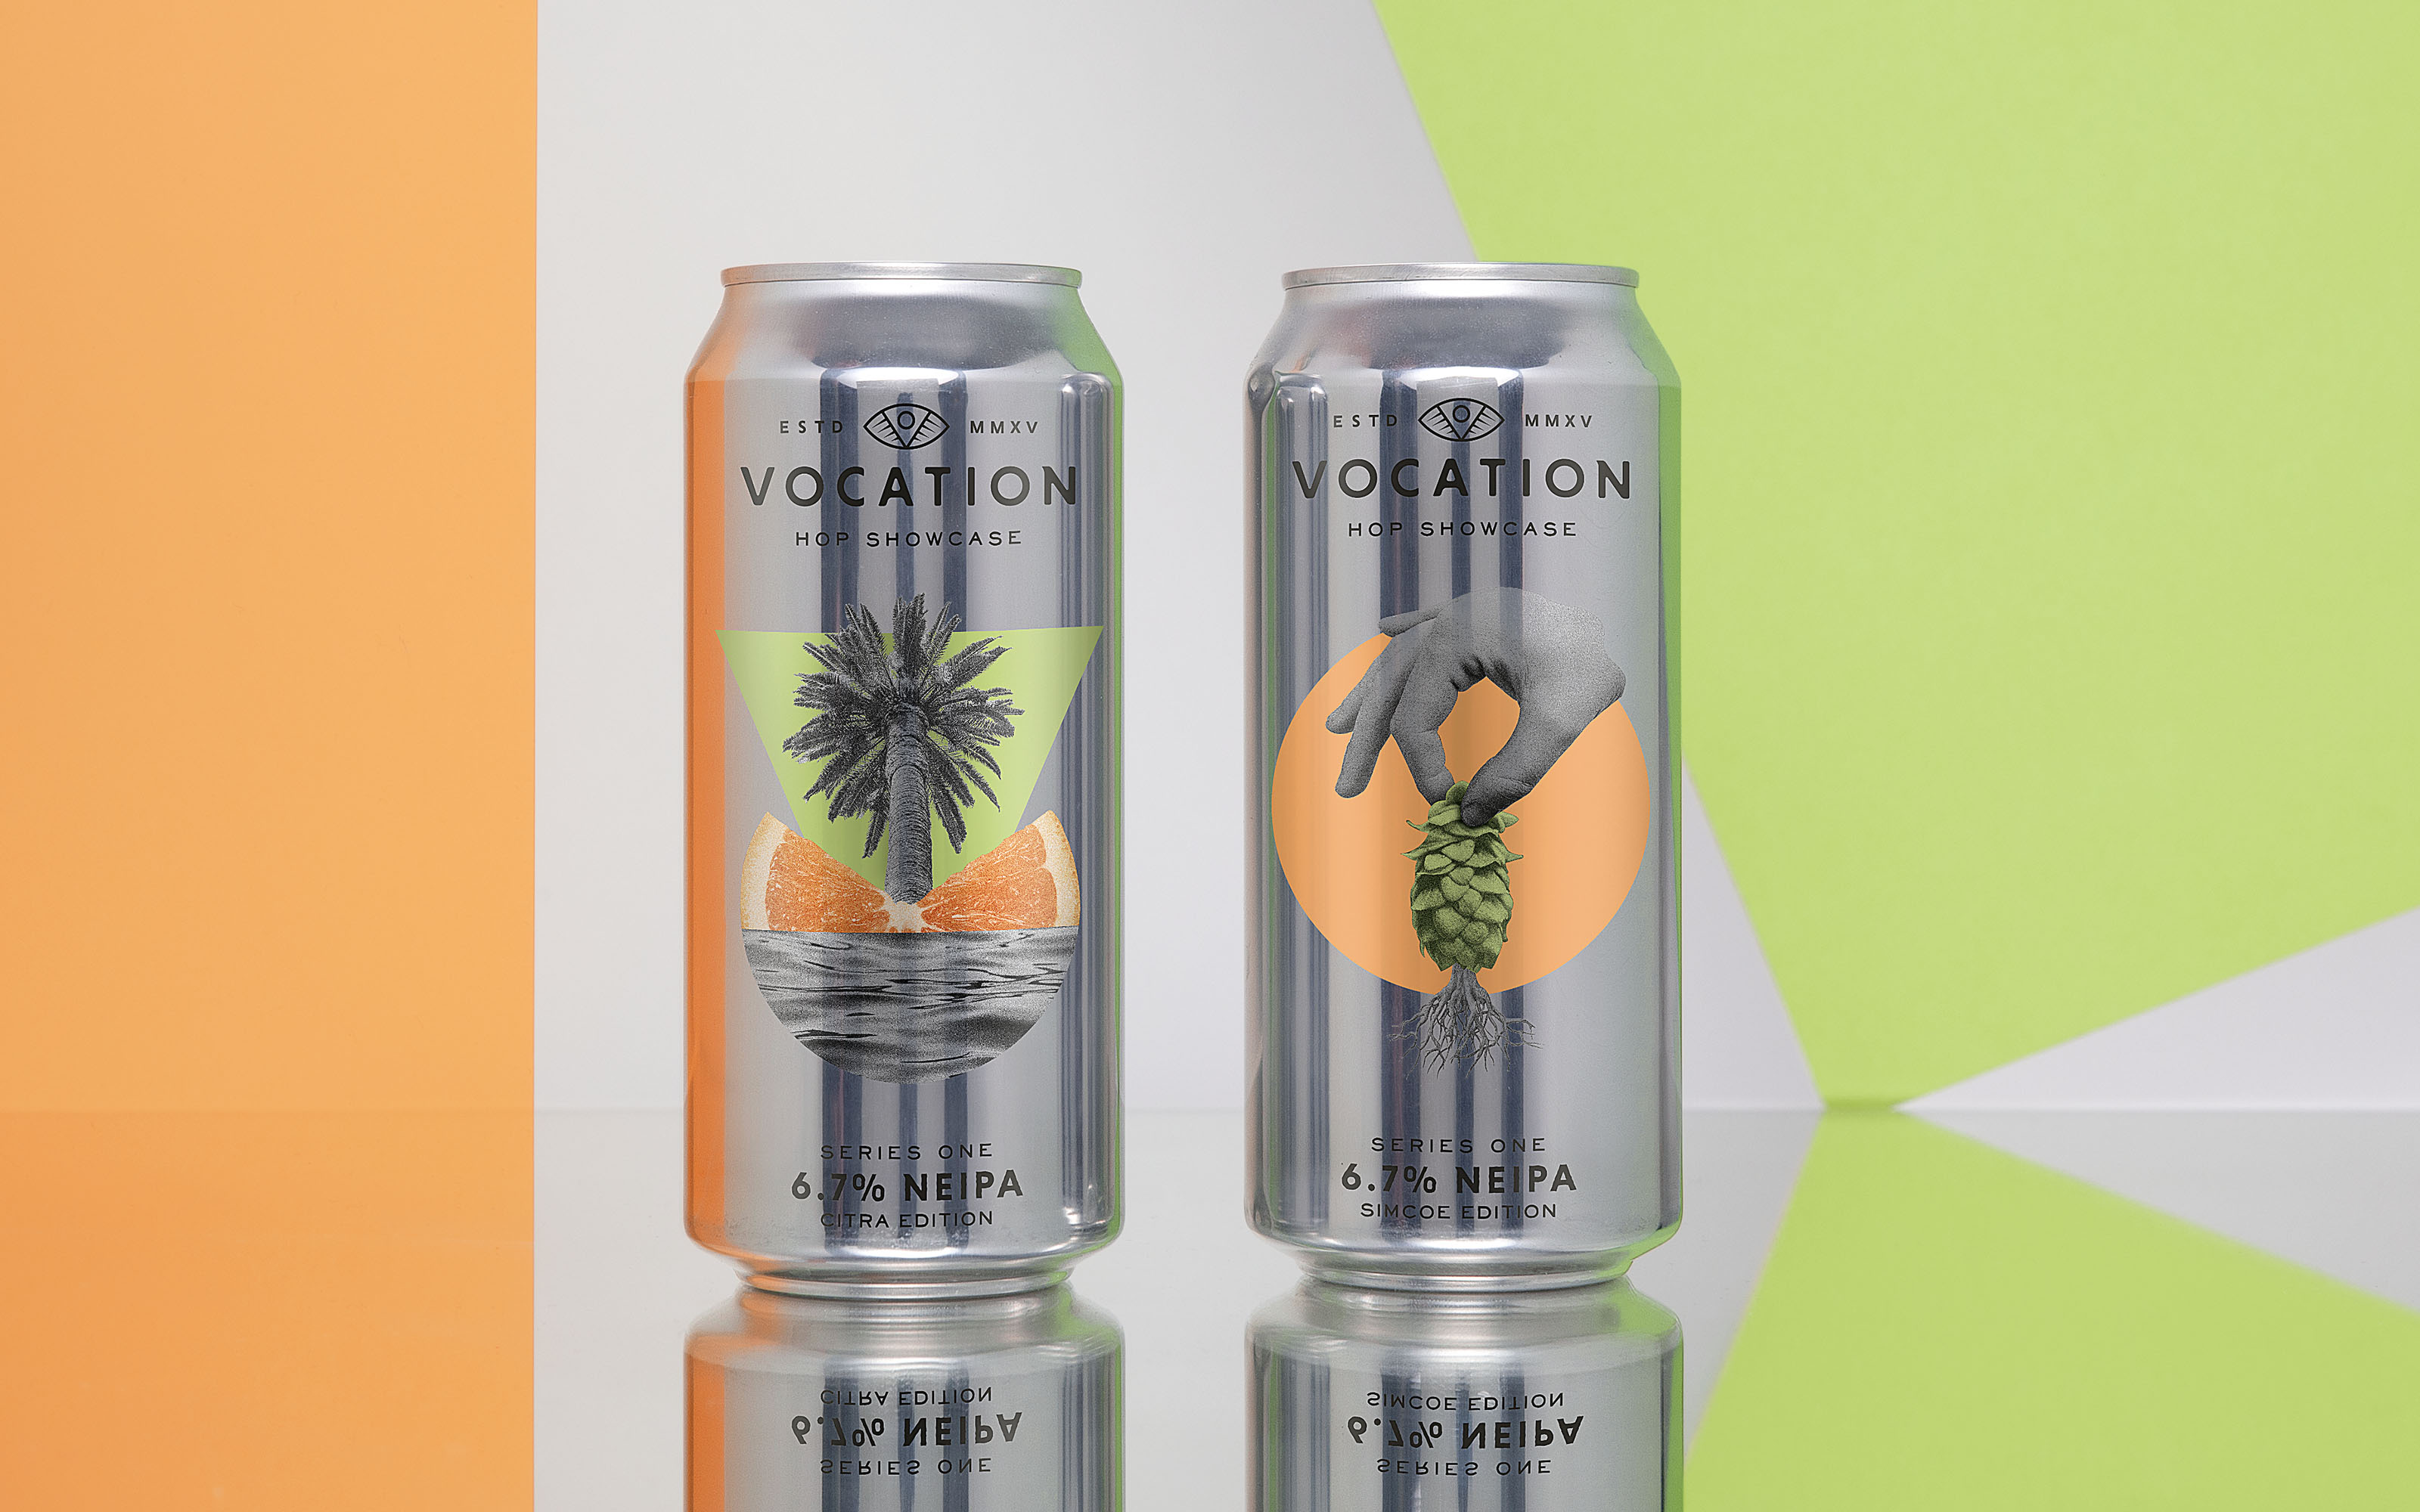 Robot Food Designs Vocation Brewery's Hop Showcase Series